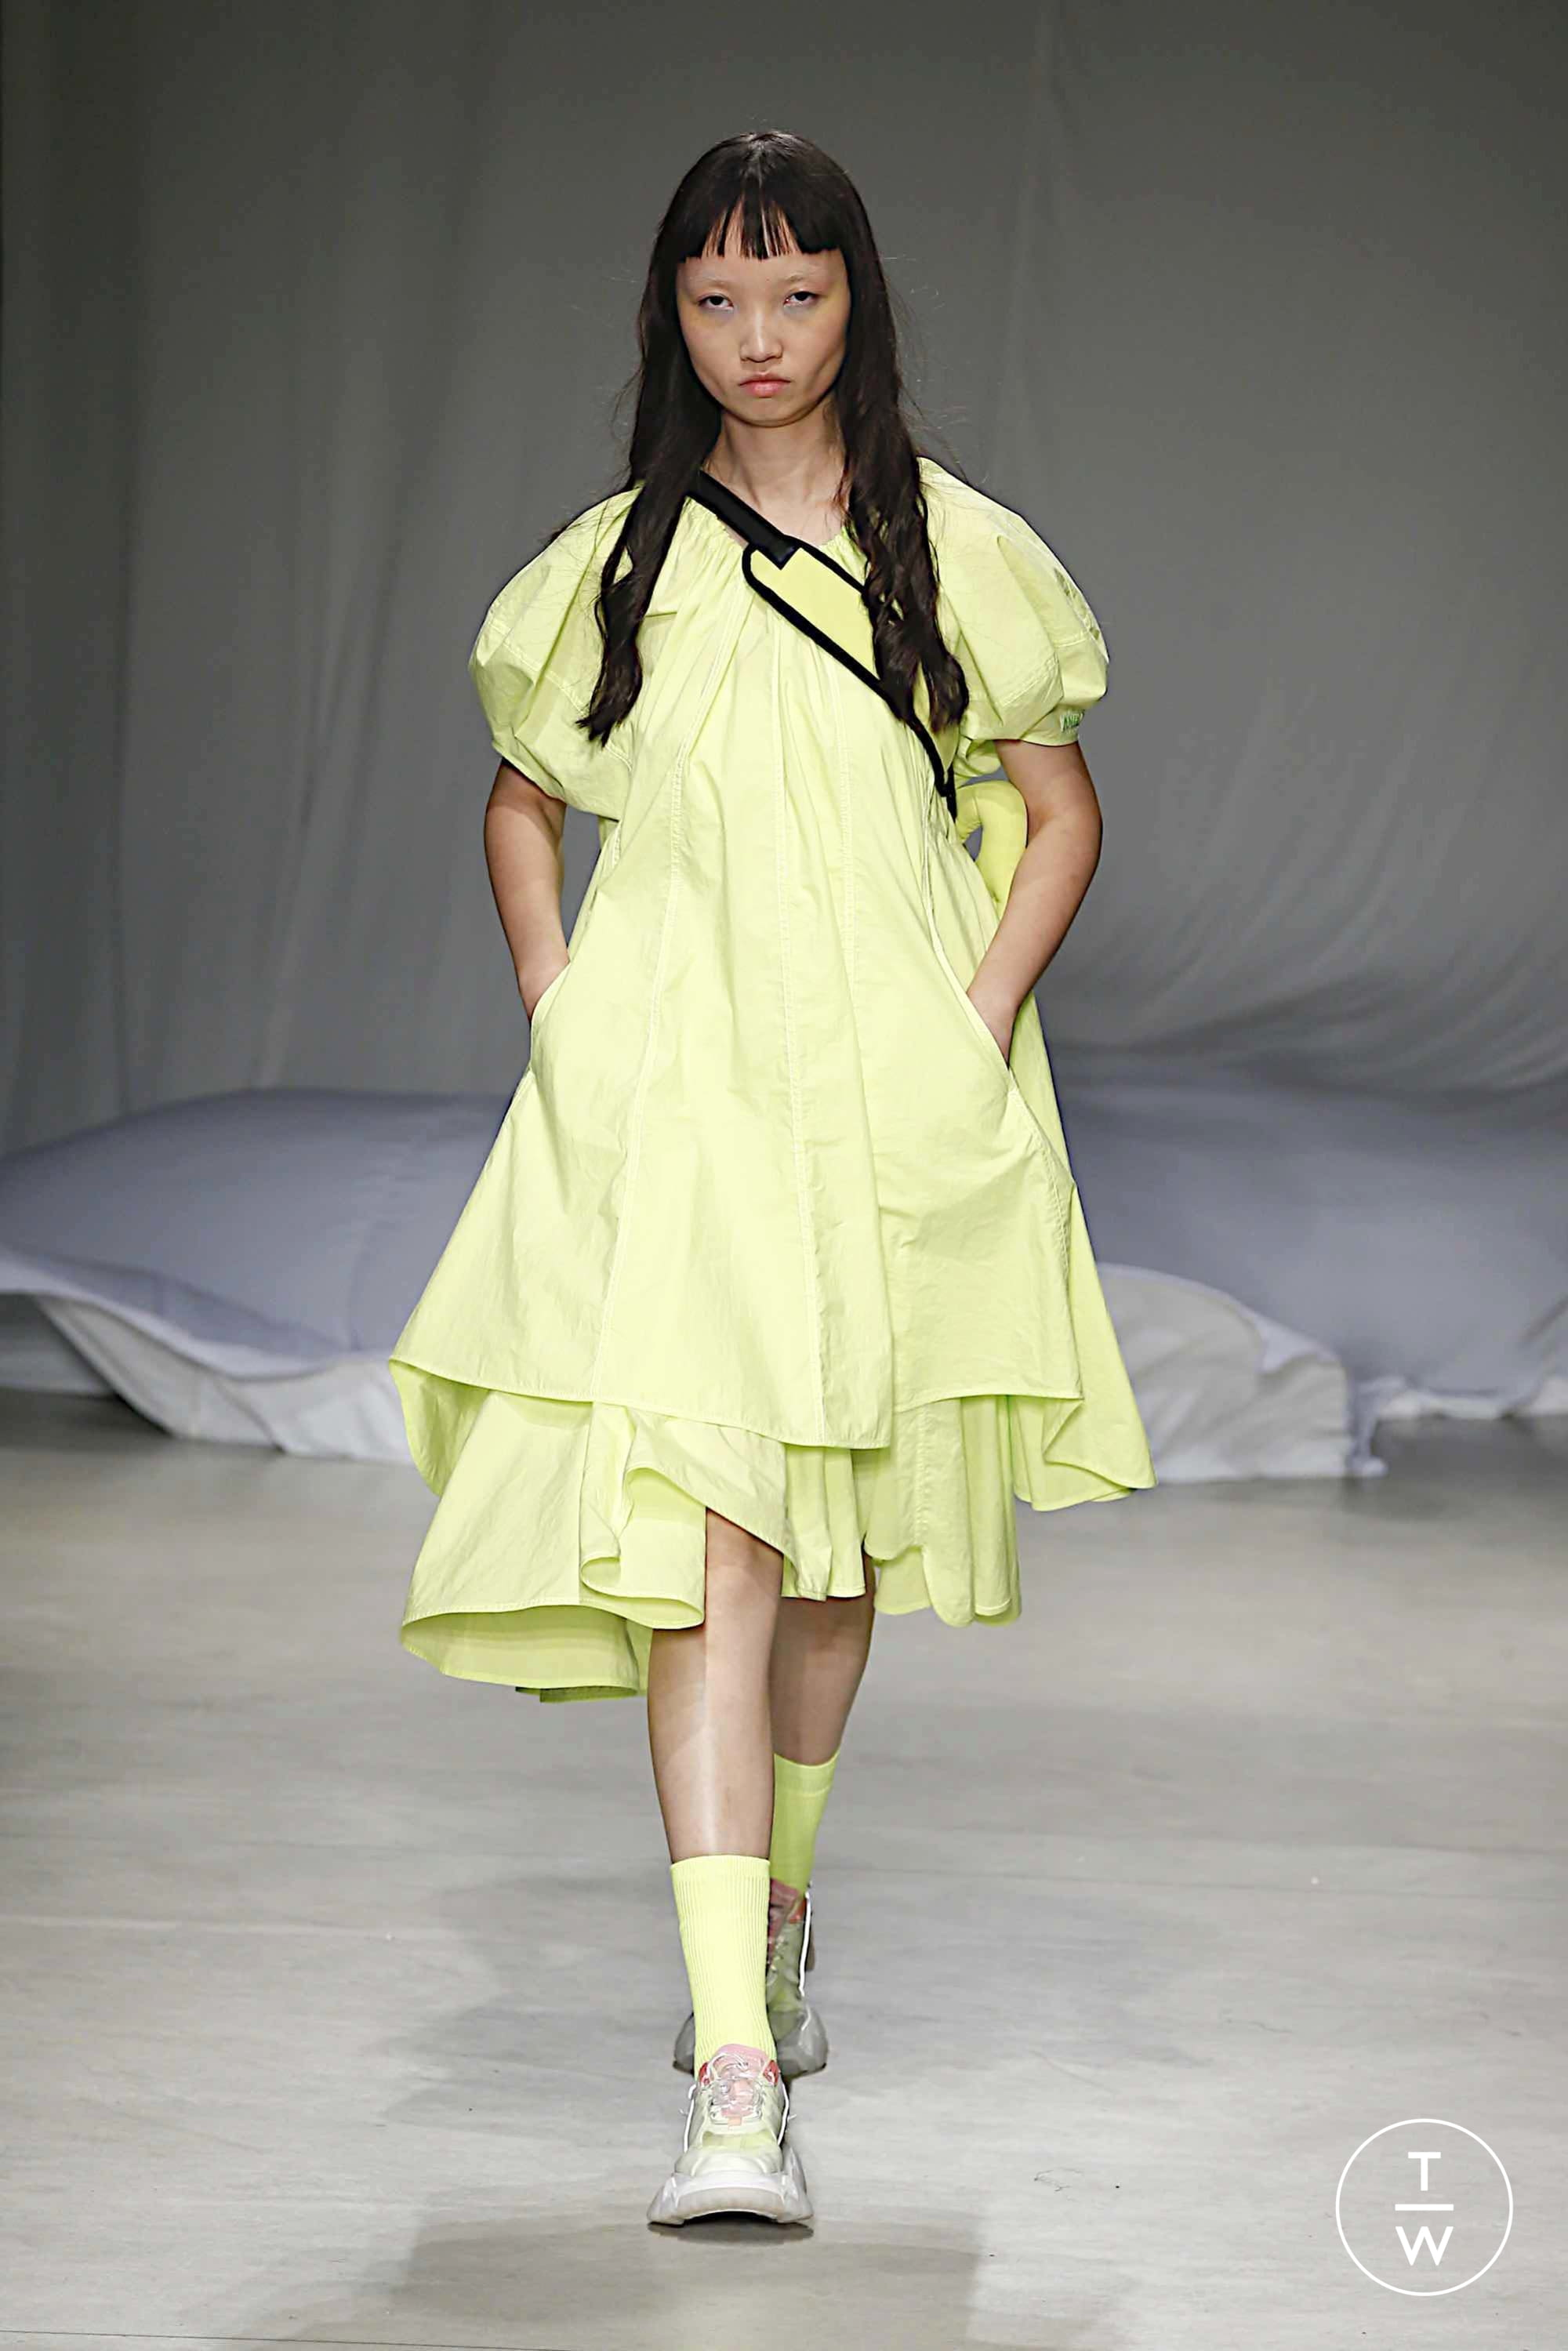 Angel Chen Ss20 Womenswear 9 The Fashion Search Engine Tagwalk Nine months after the meetings with the gates foundation in rwanda — bobby l. angel chen ss20 womenswear 9 the